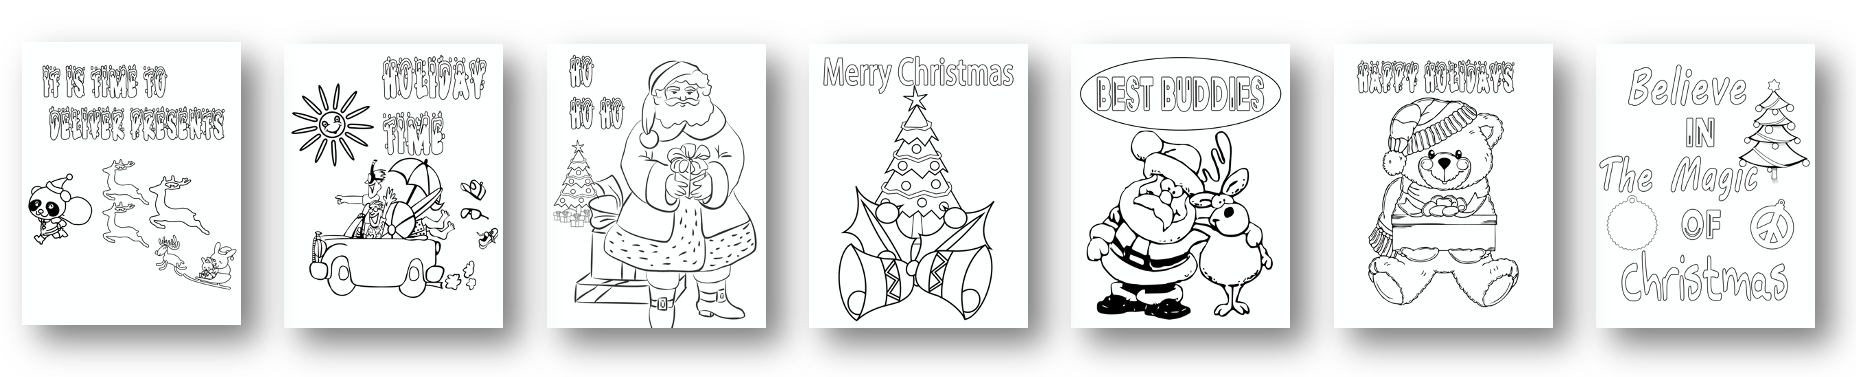 7 Bonus Coloring Pages